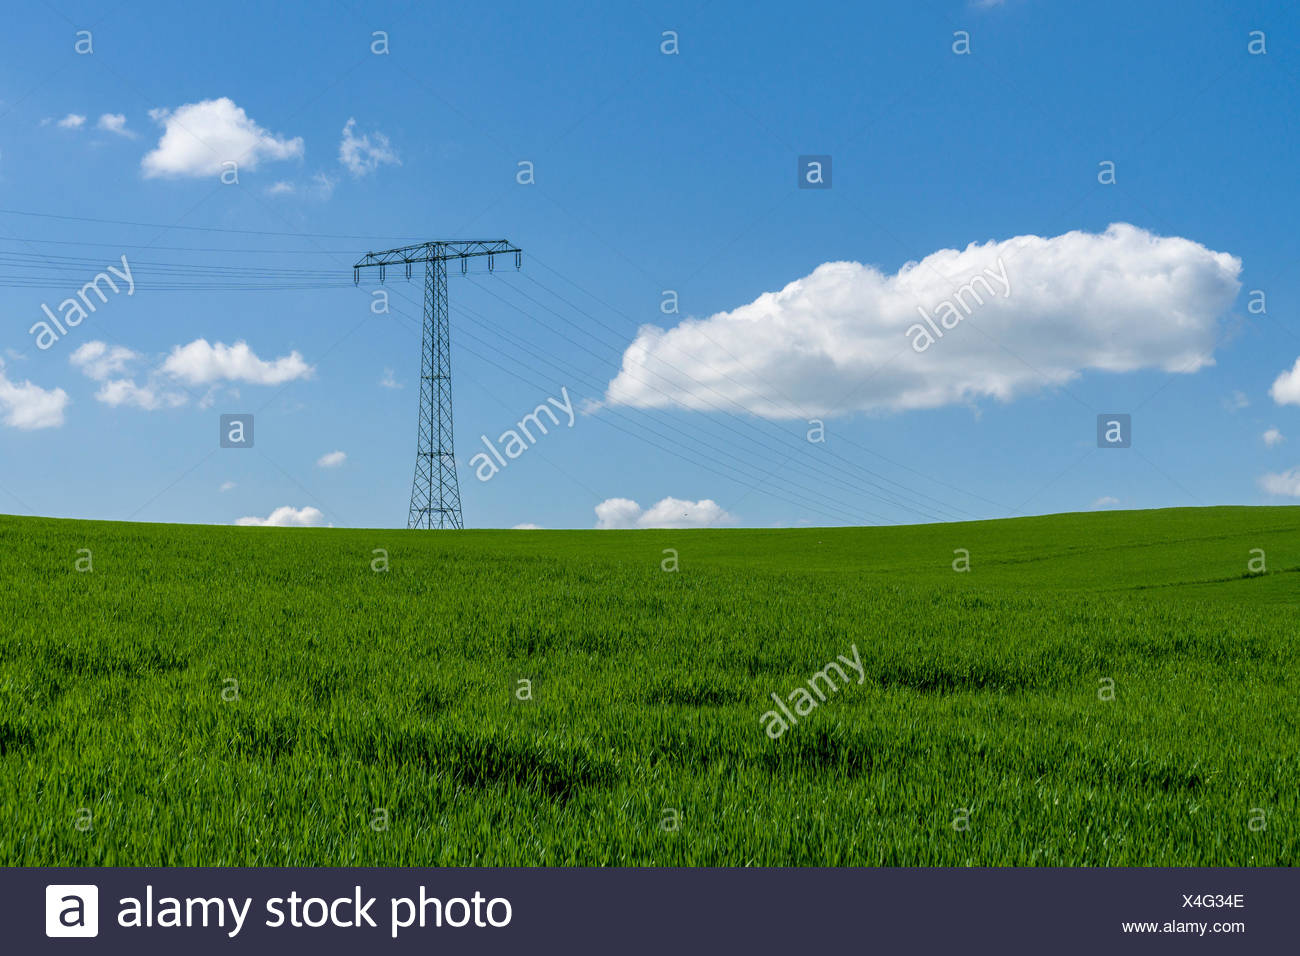 Agricultural landscape with overhead powerlines, green fields and cloudy blue sky, Cunnersdorf, Saxony, Germany - Stock Image